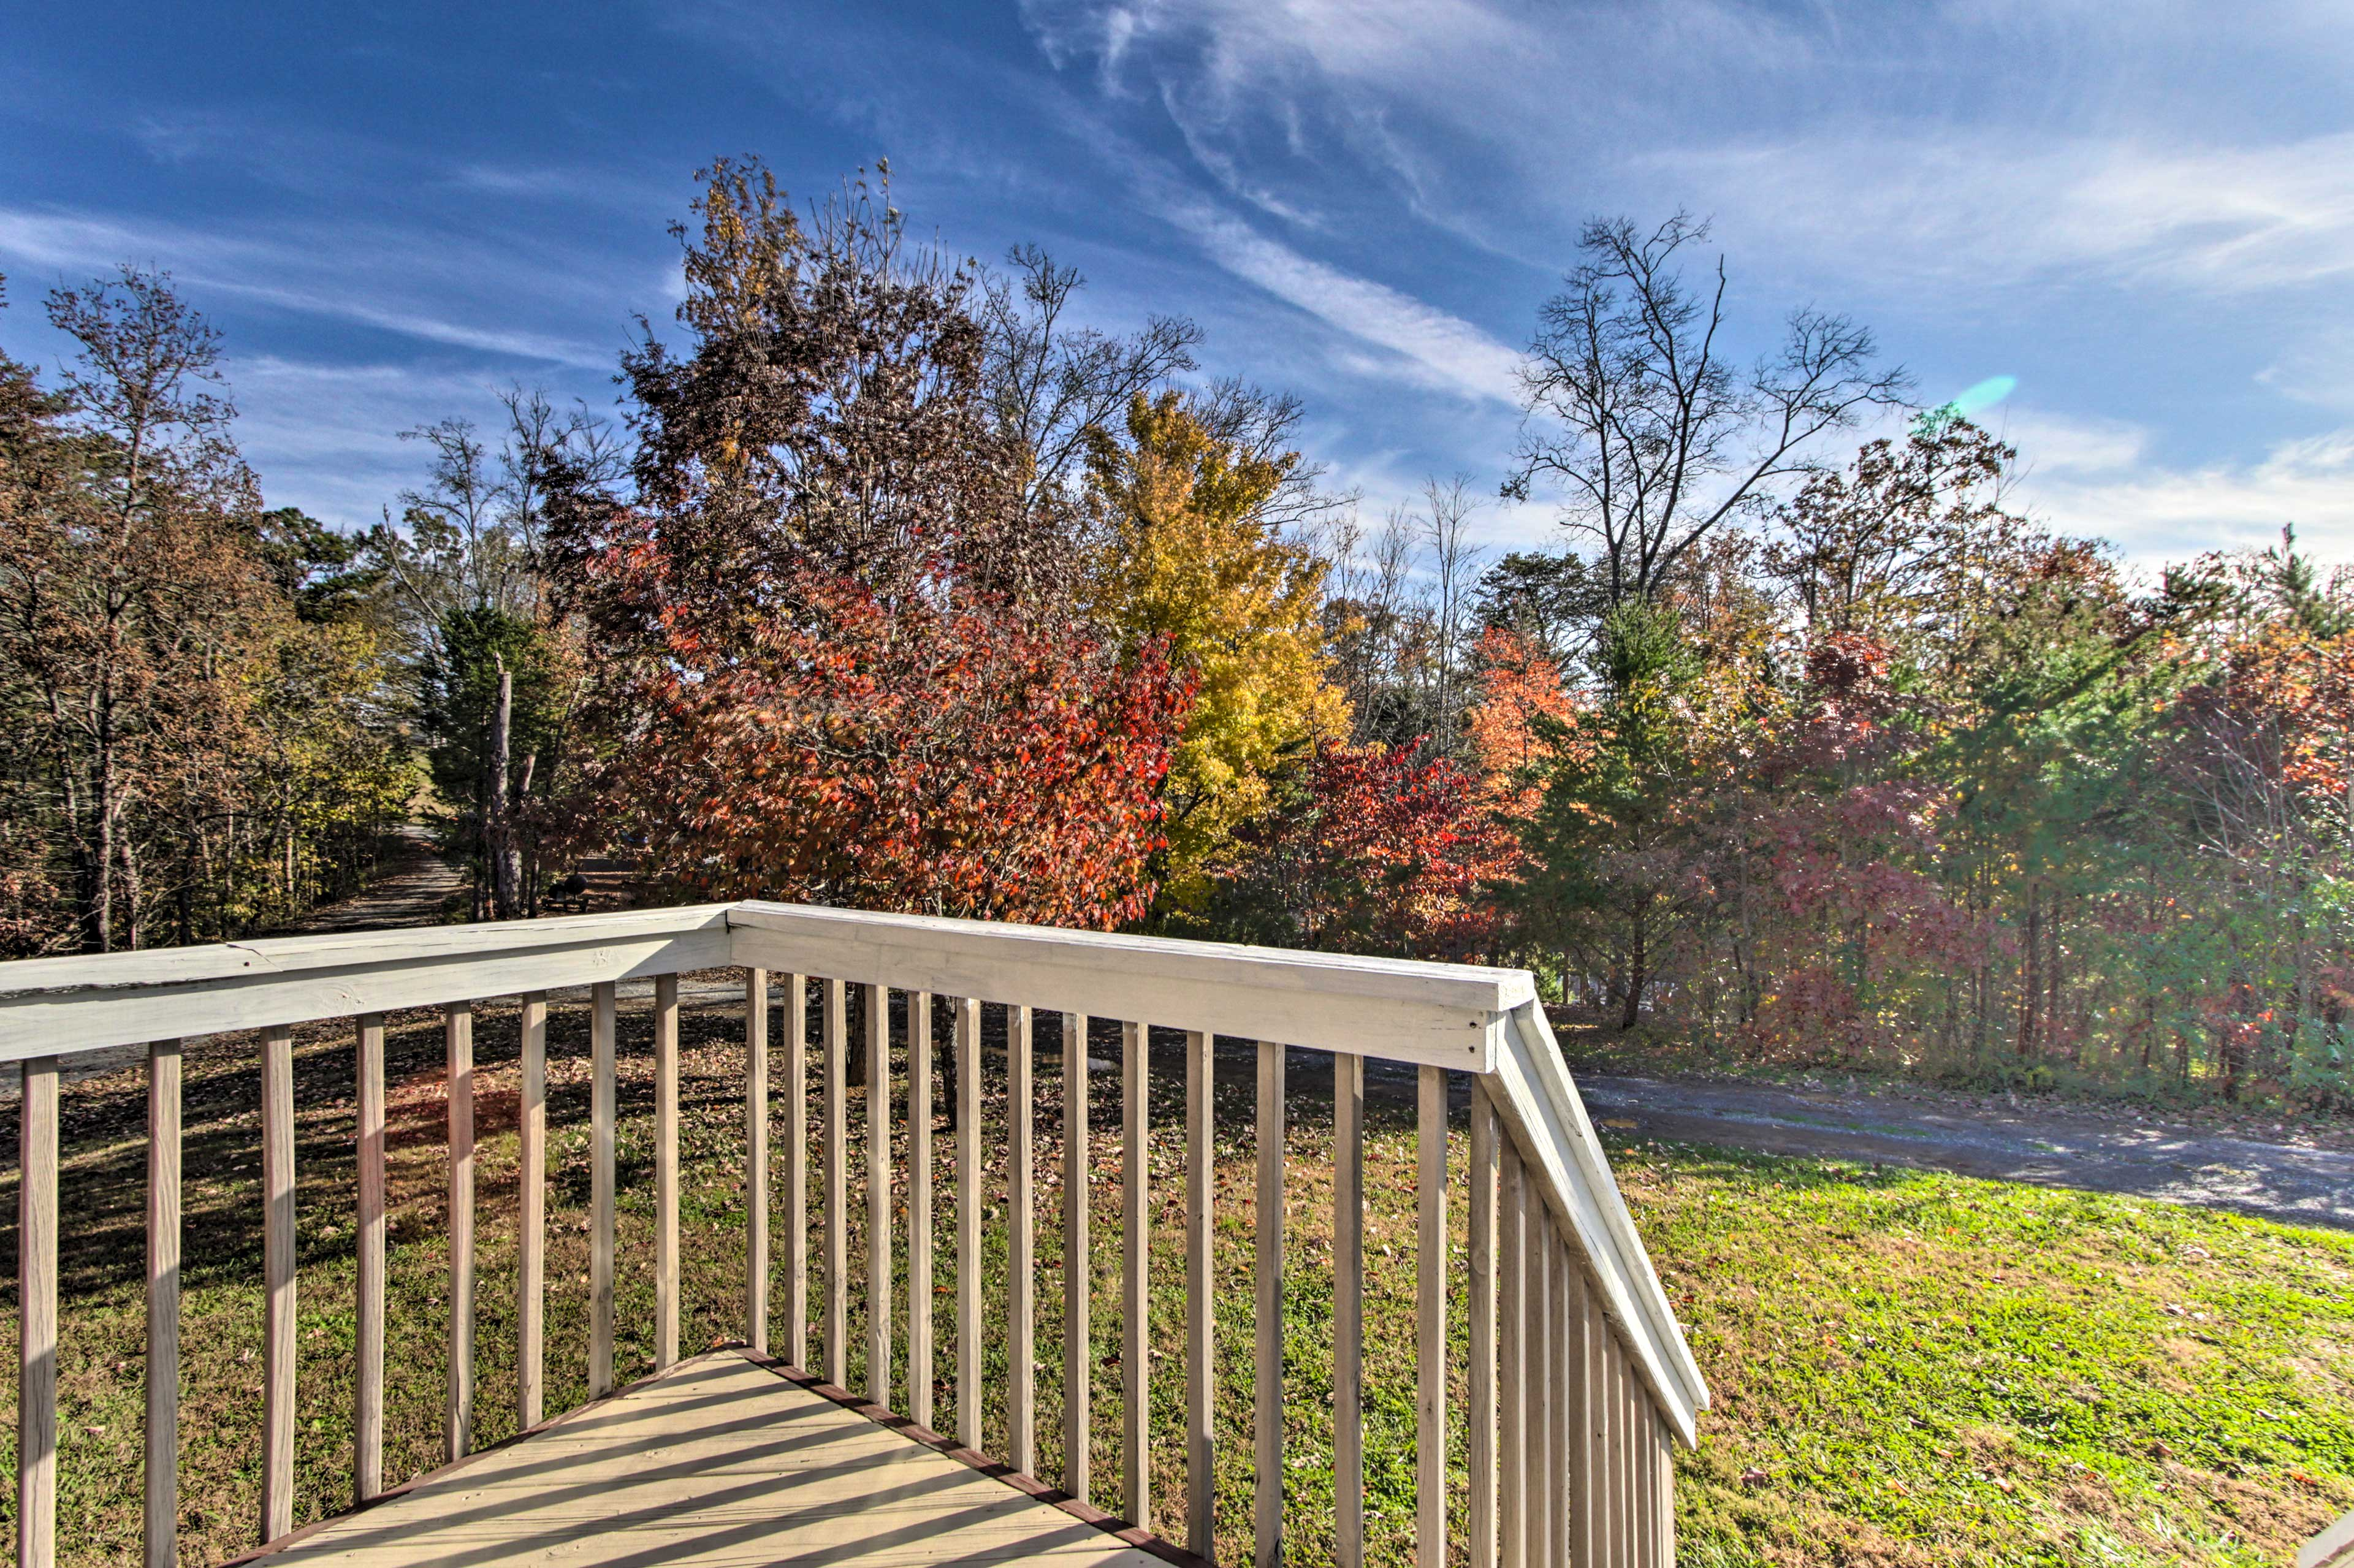 Visit during the fall for the peak foliage color change.